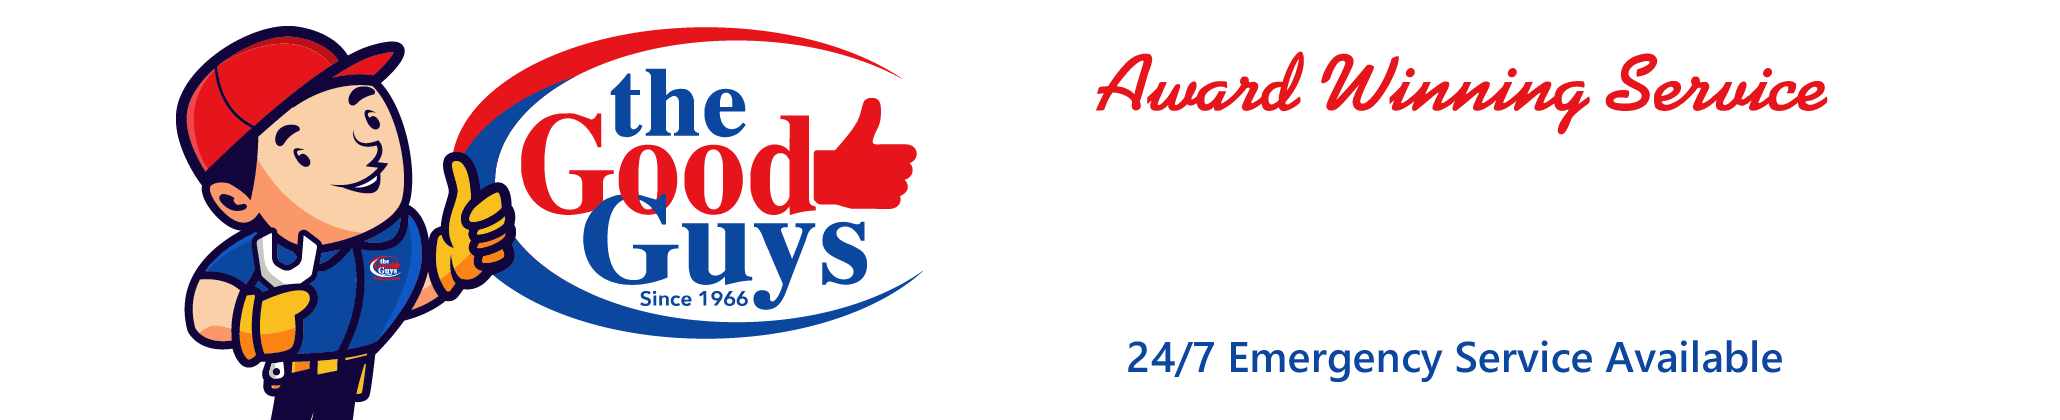 The Good Guys Heating and Cooling -- 920-734-1436, Hours: 8AM to 4:30PM, 24/7 Emergency Service.